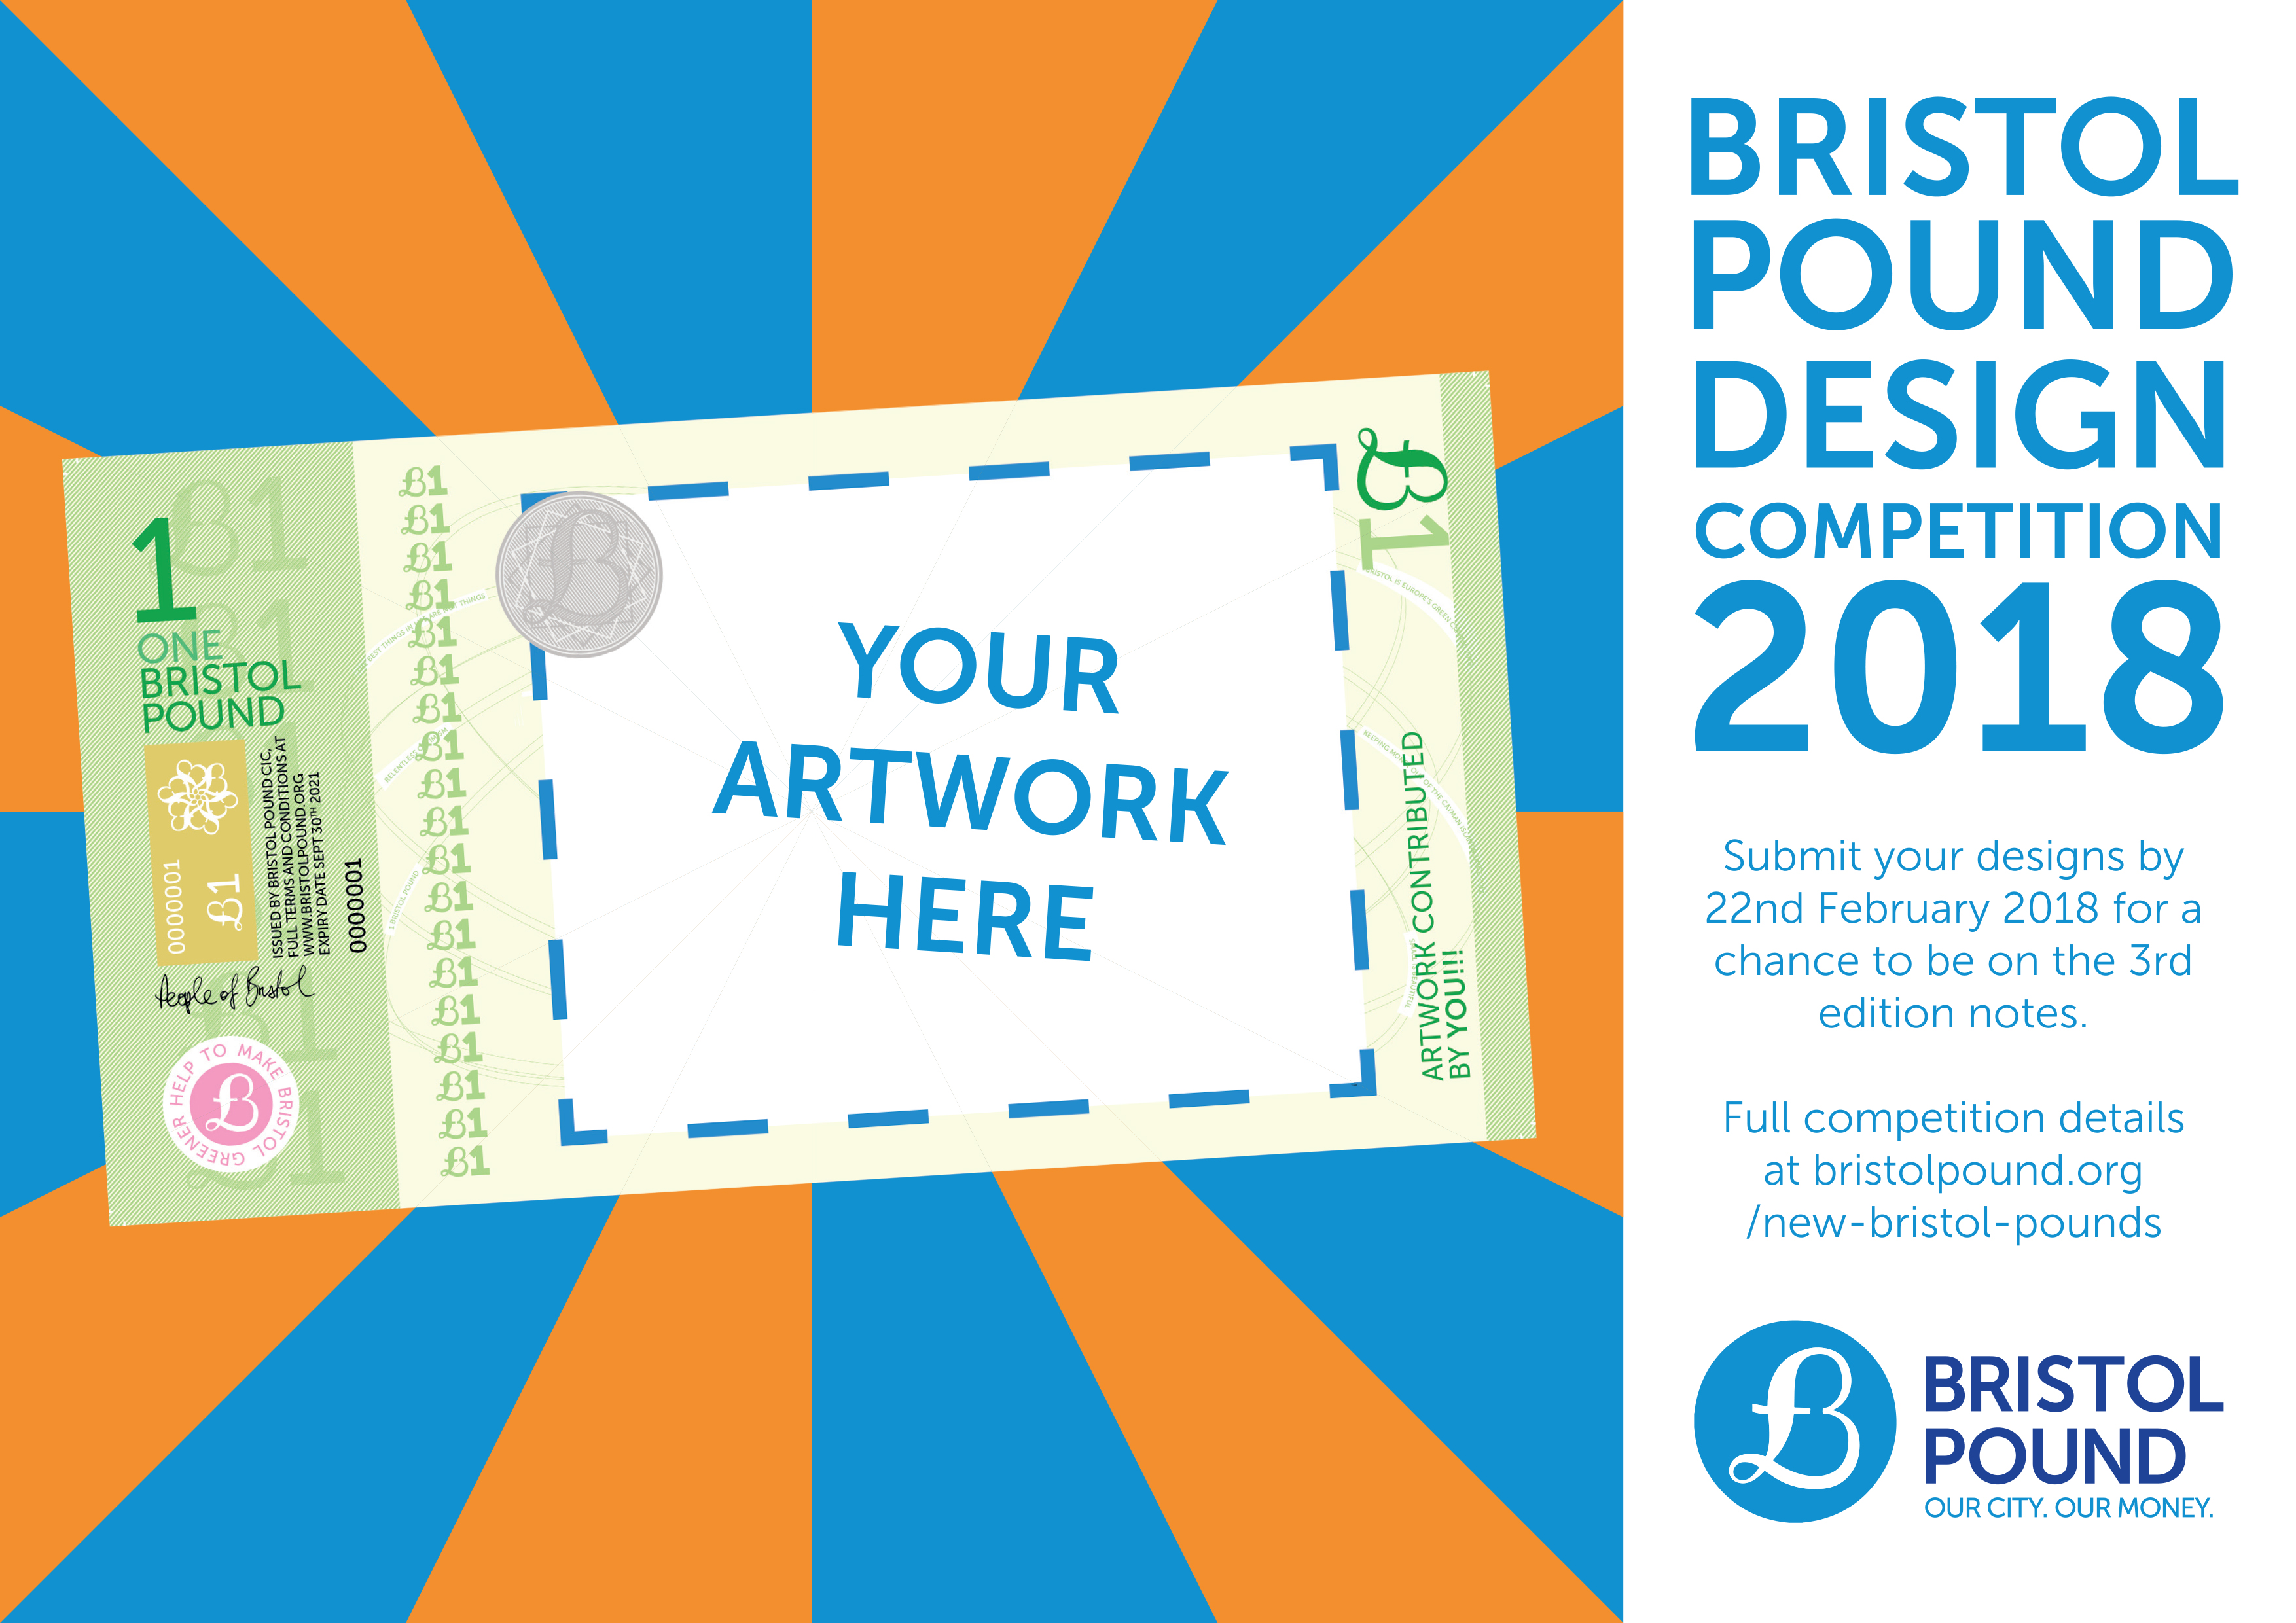 Competition to Redesign the Bristol Pound